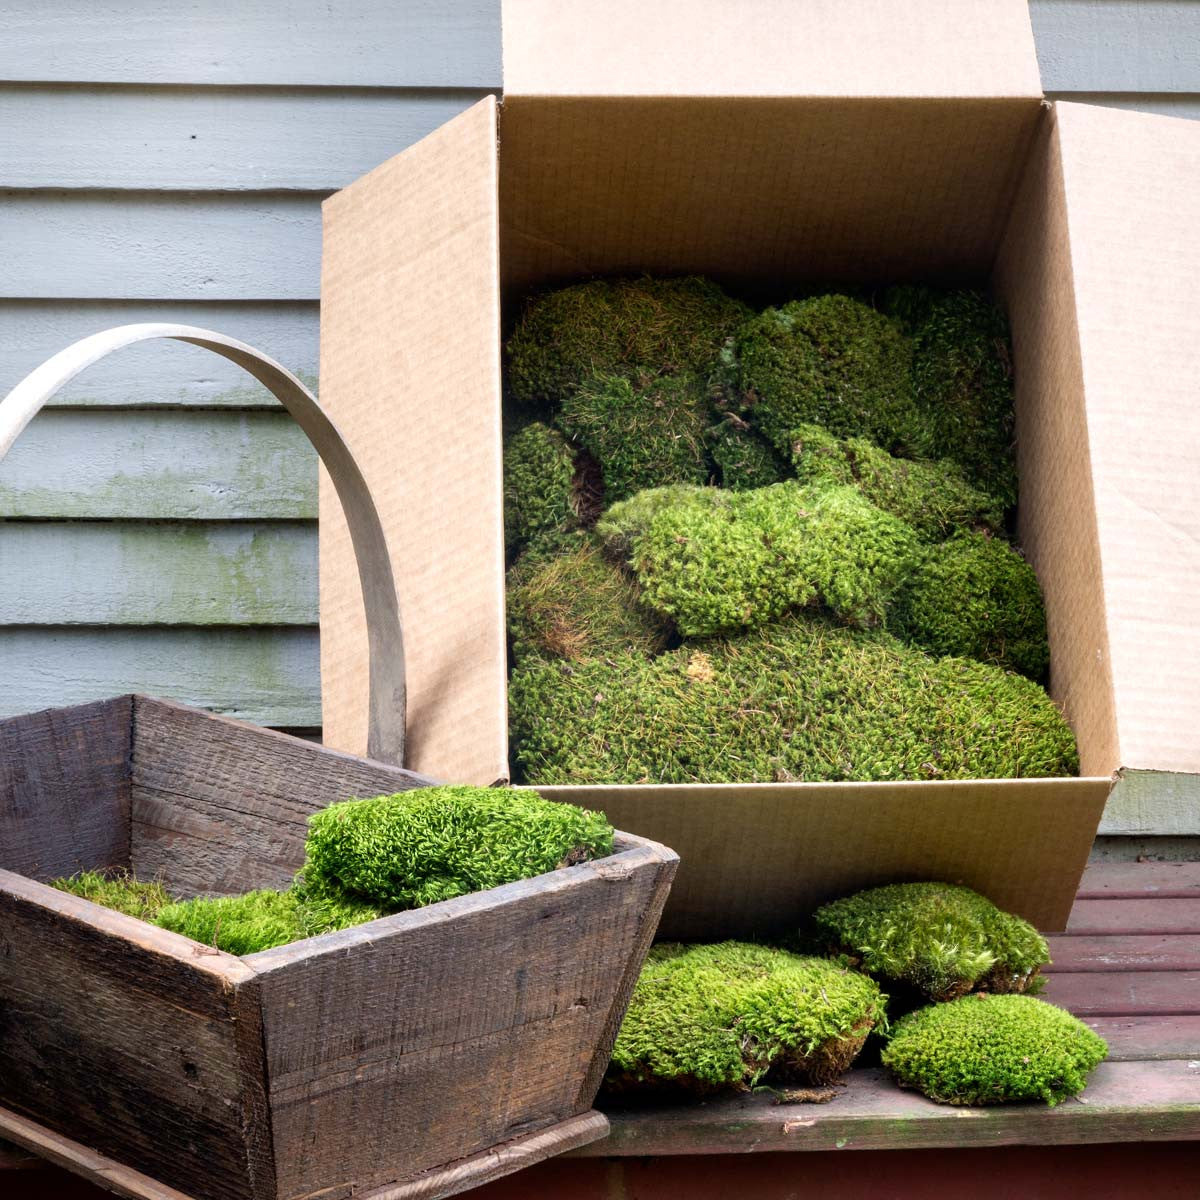 Mood Moss It Box Colonial House of Flowers Atlanta Plants Vases Containers Florist Weddings Events Georgia Southern South